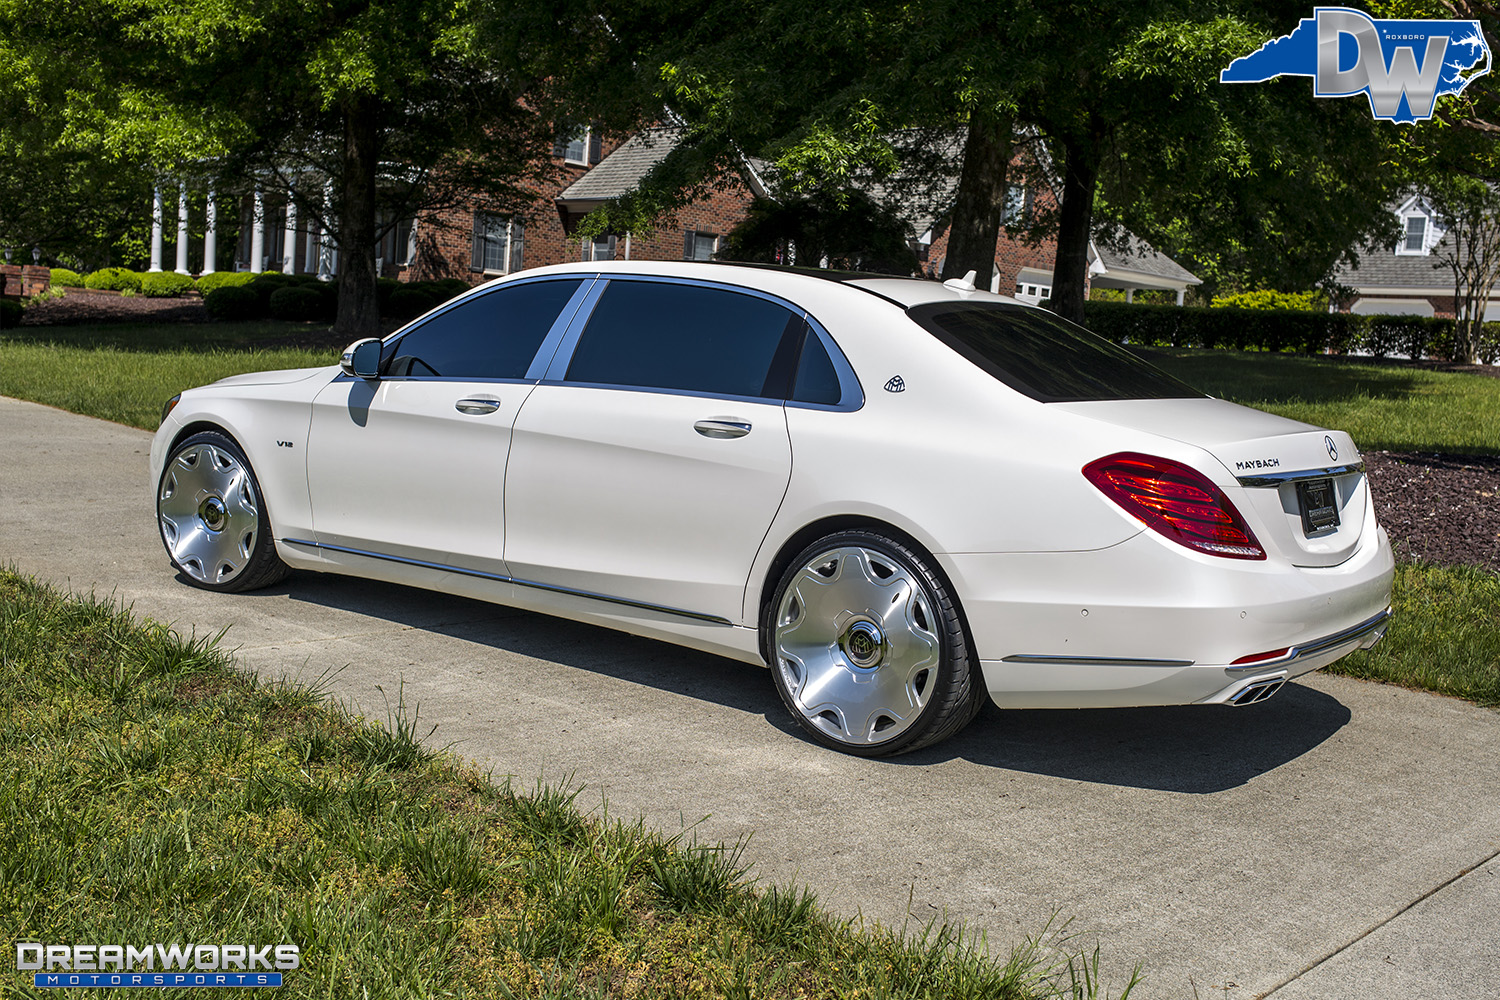 Maybach-S600-Chris-Wilcox-Dreamworks-Motorsports-3.jpg